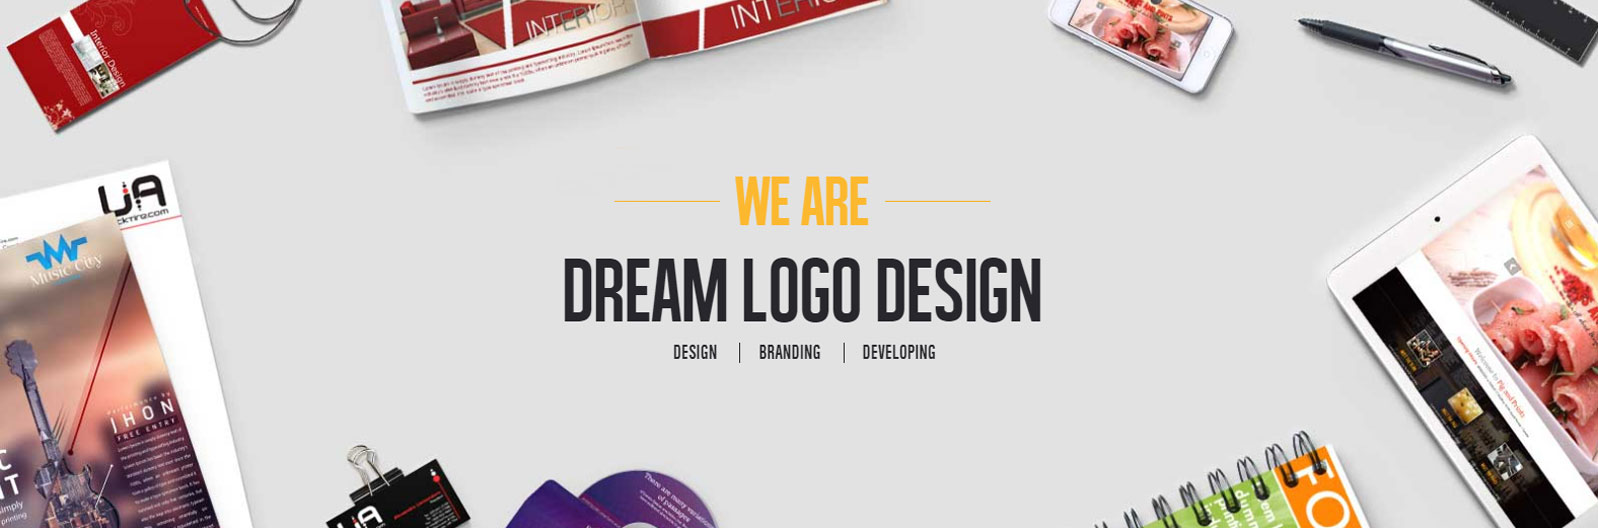 Gladiators Basketball Sports Logo Design – DreamLogoDesign